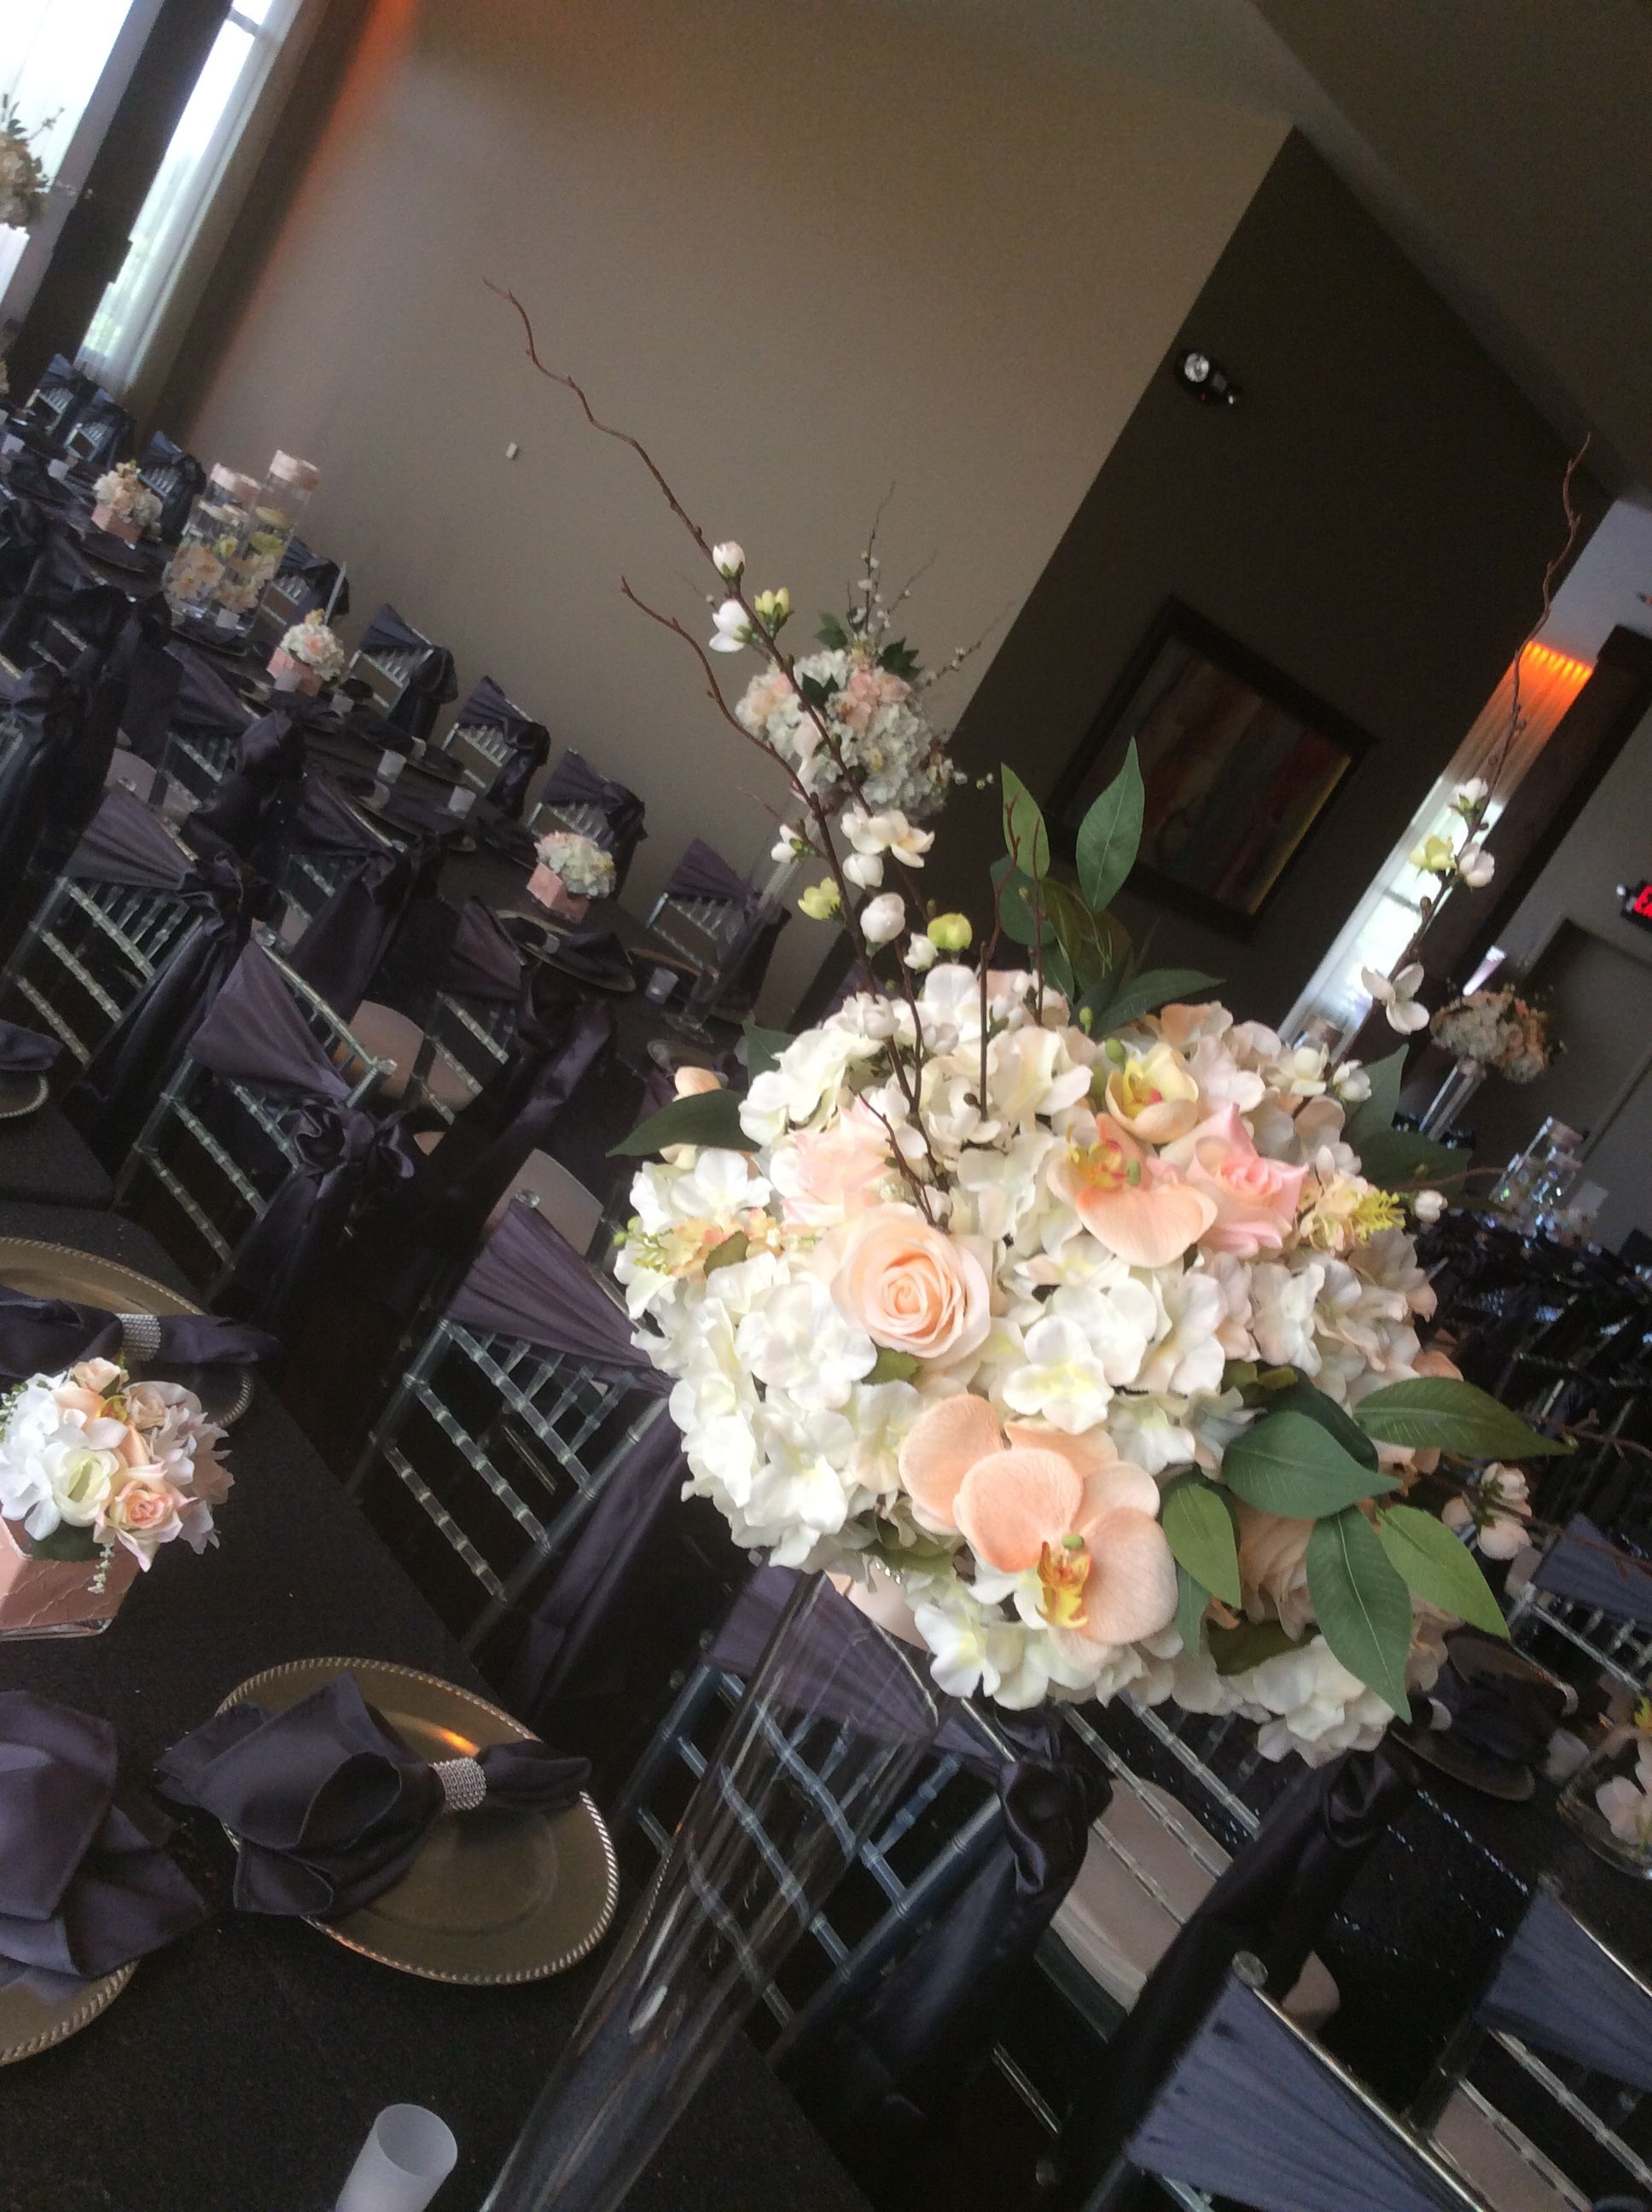 The flower centerpieces mini florals and candlescapes in hues of